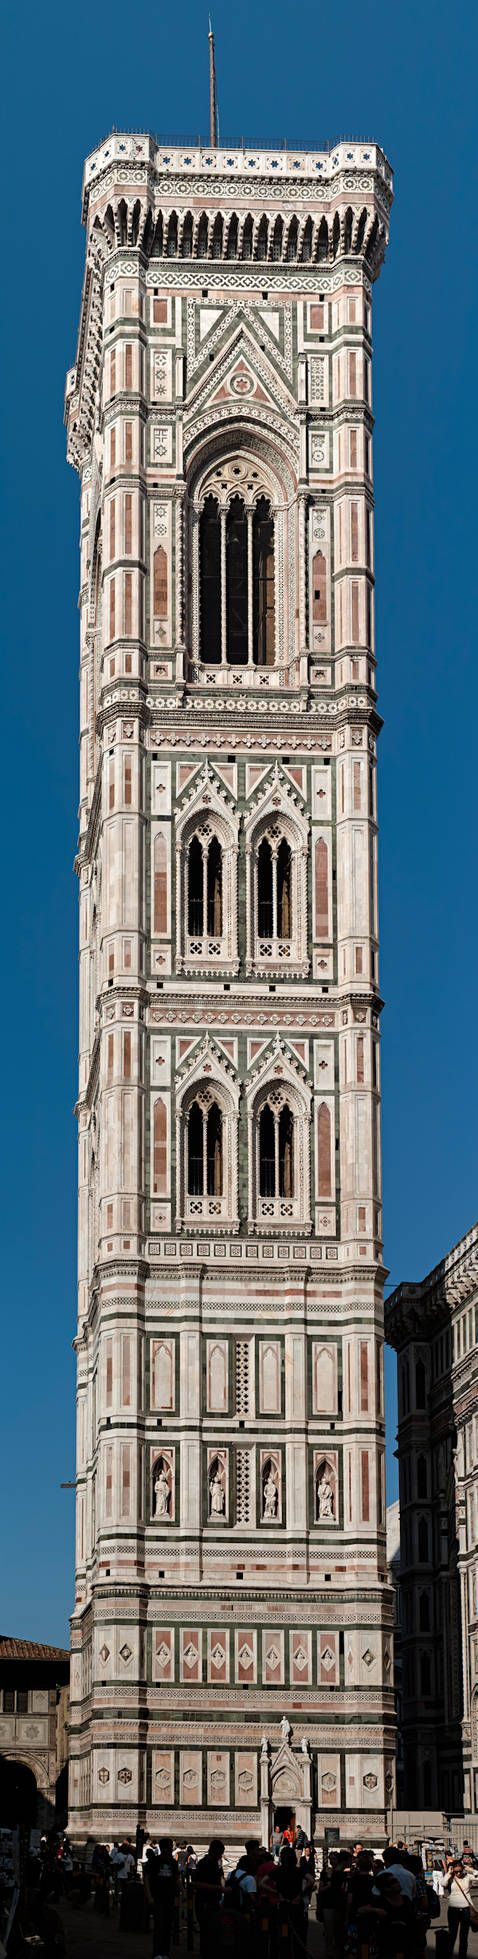 TO: Campanile. Firenze, Italy.